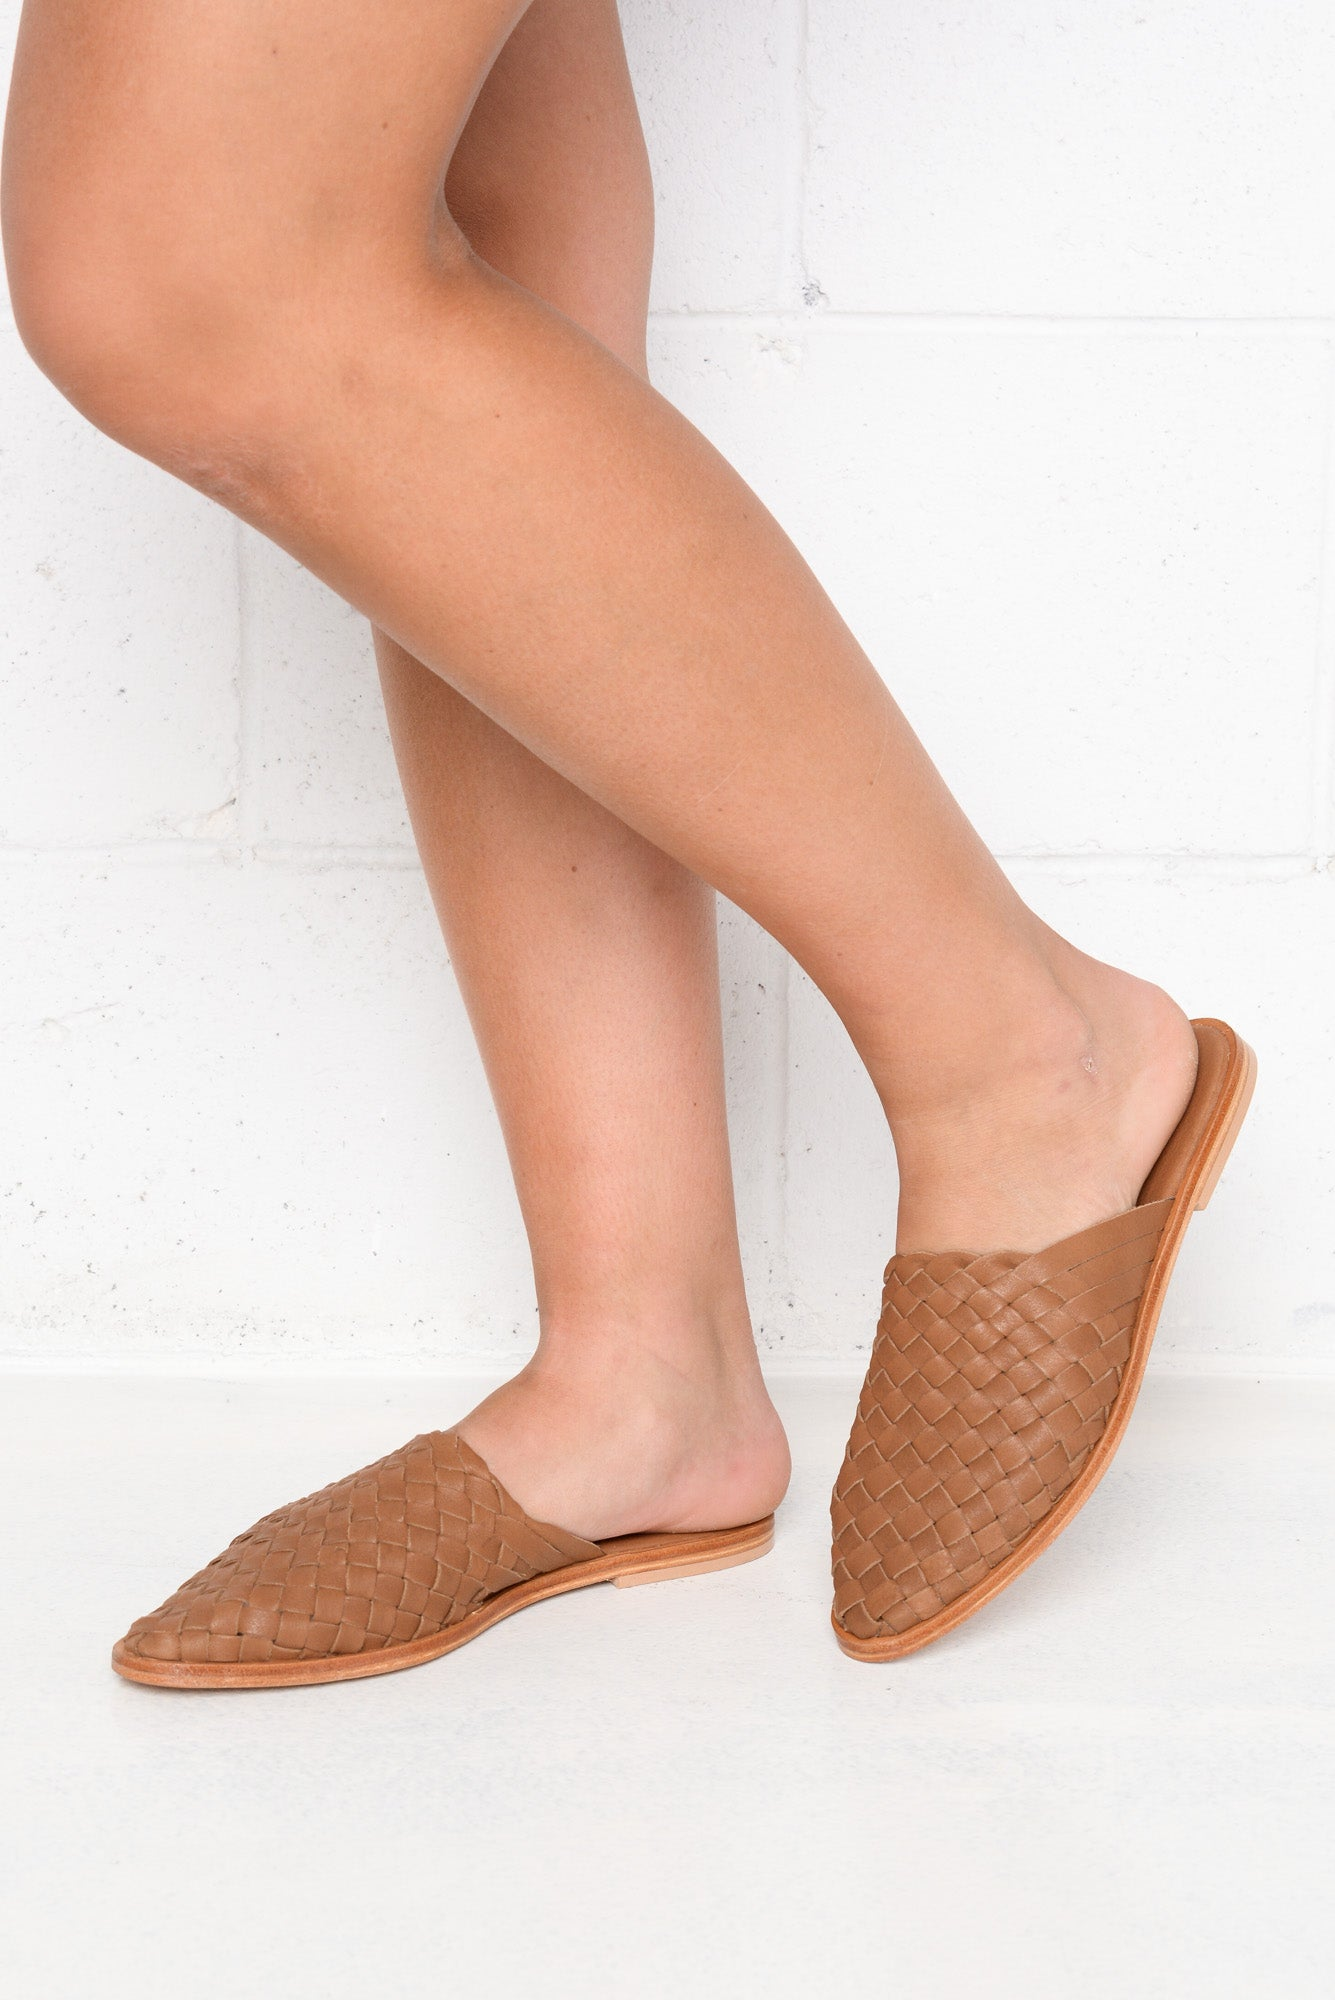 Luella Tan Leather Woven Mule